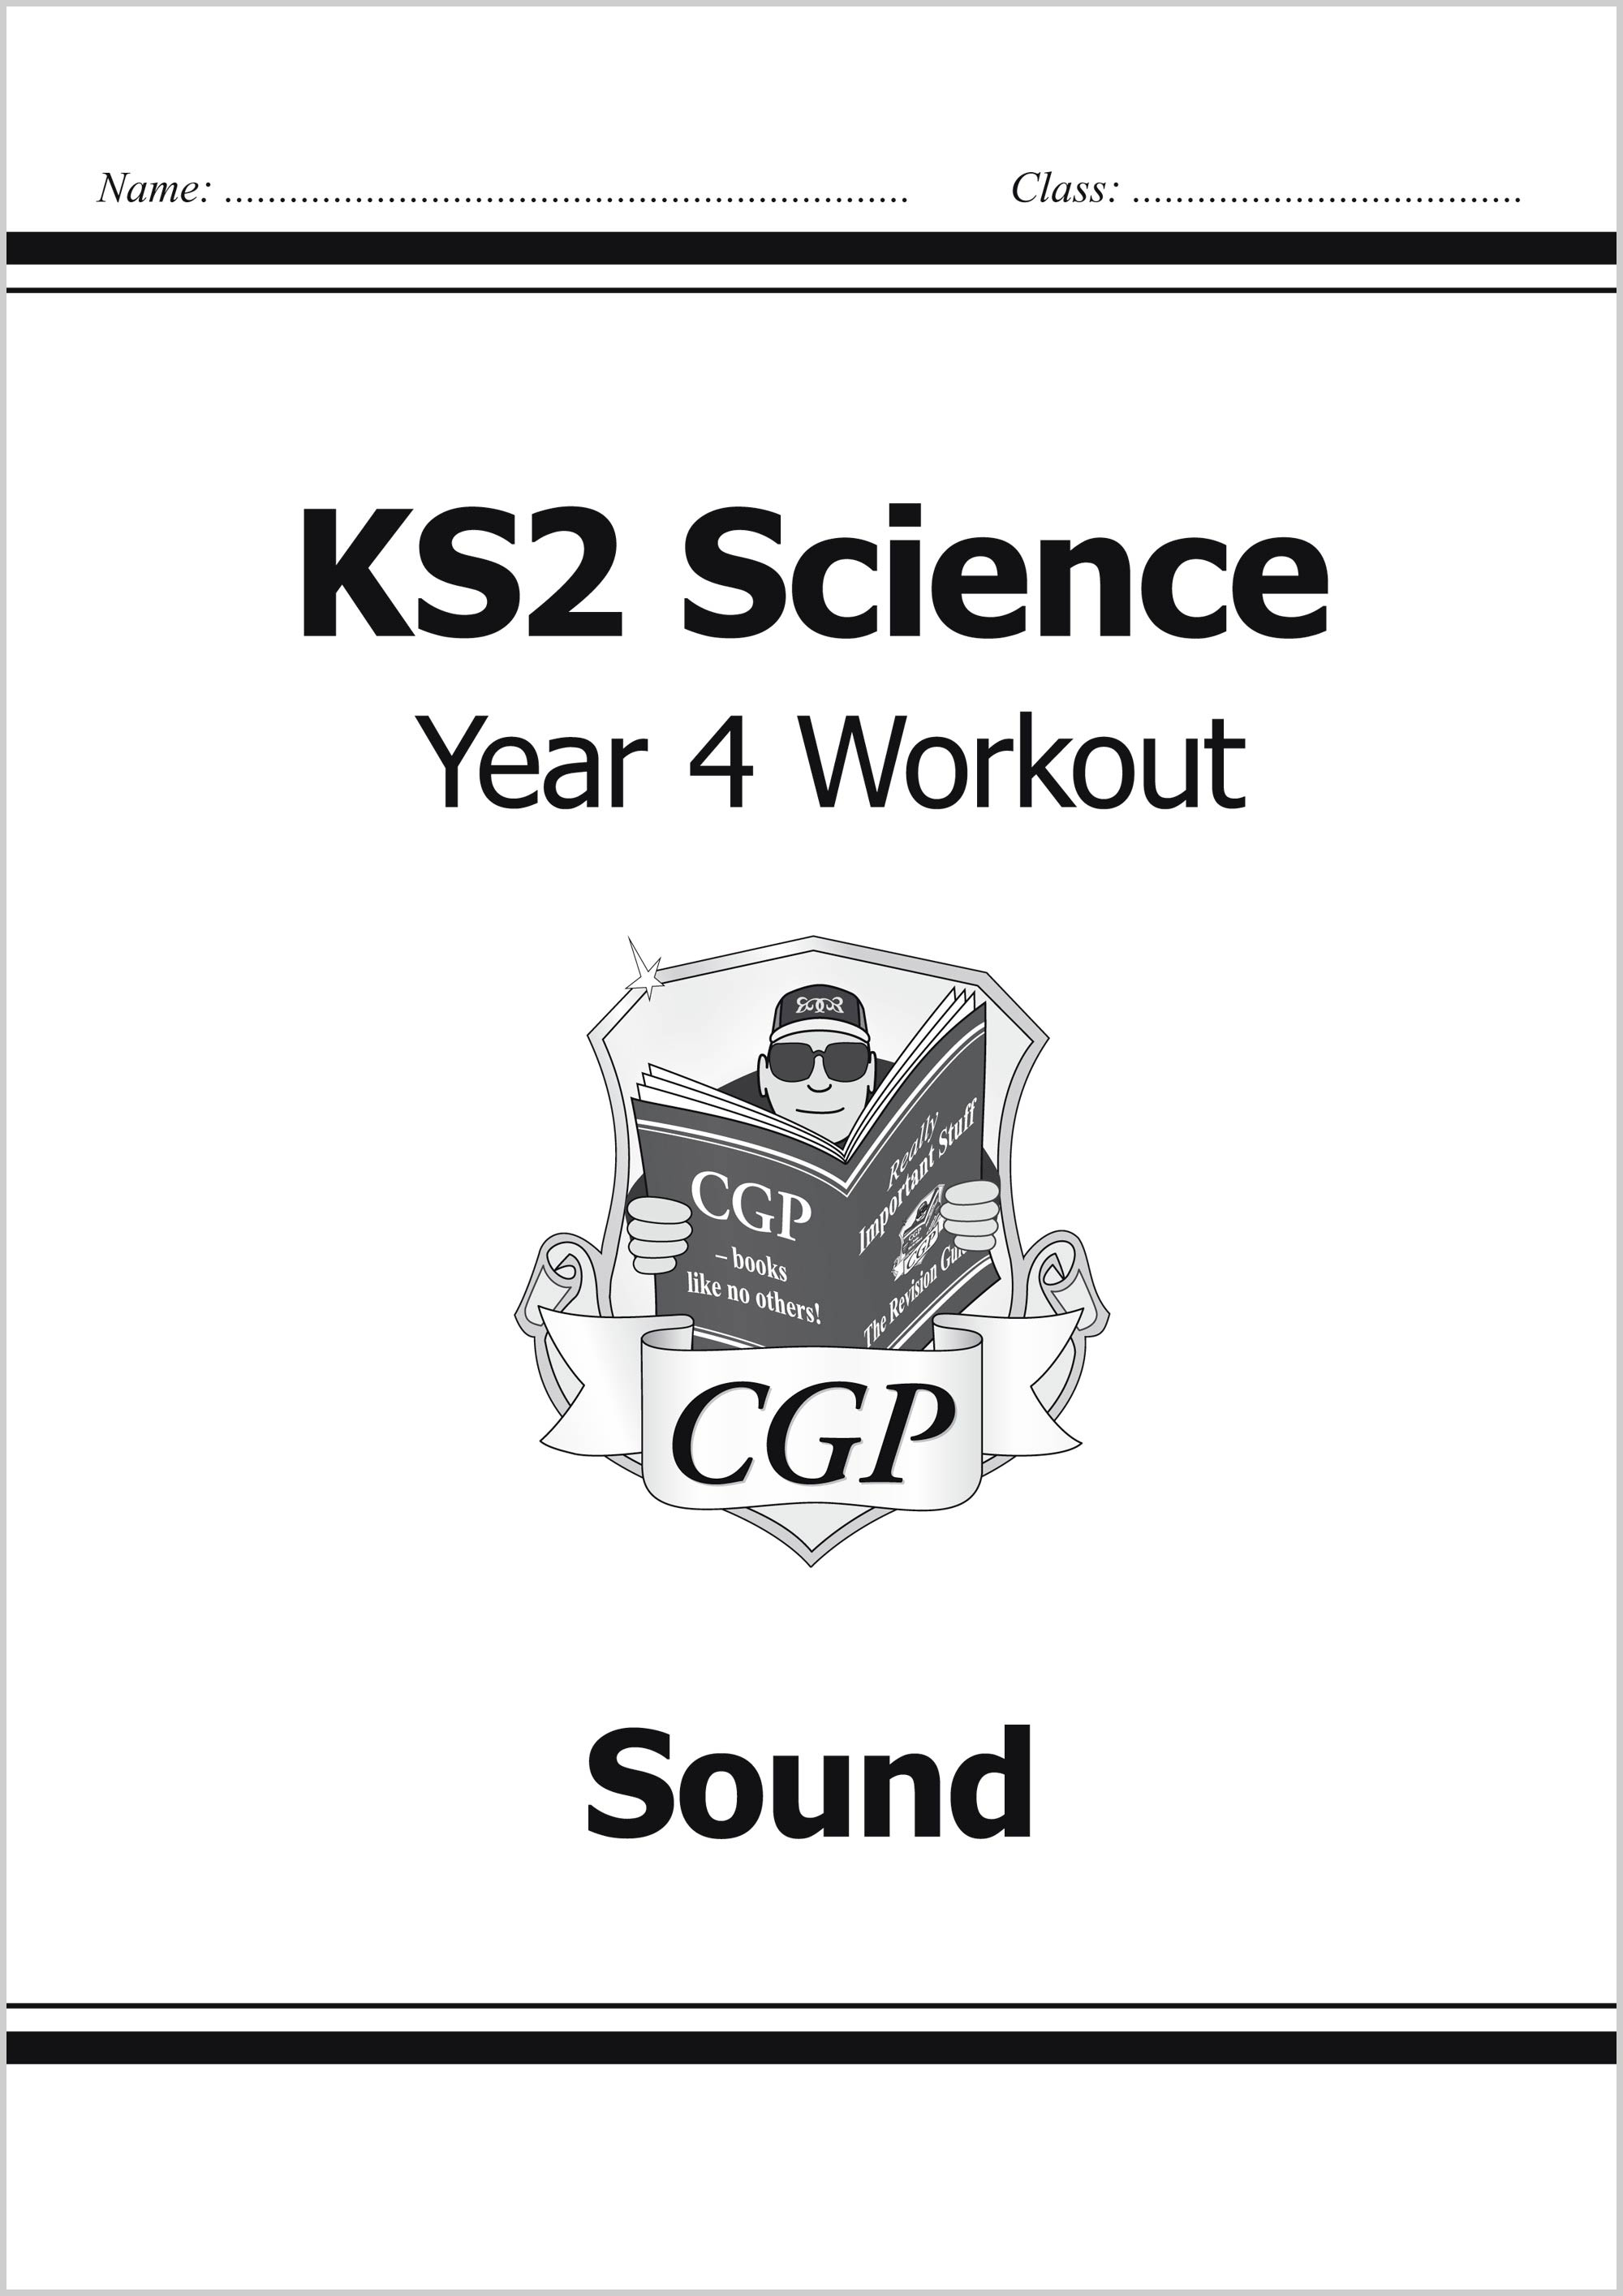 S4D22 - KS2 Science Year Four Workout: Sound